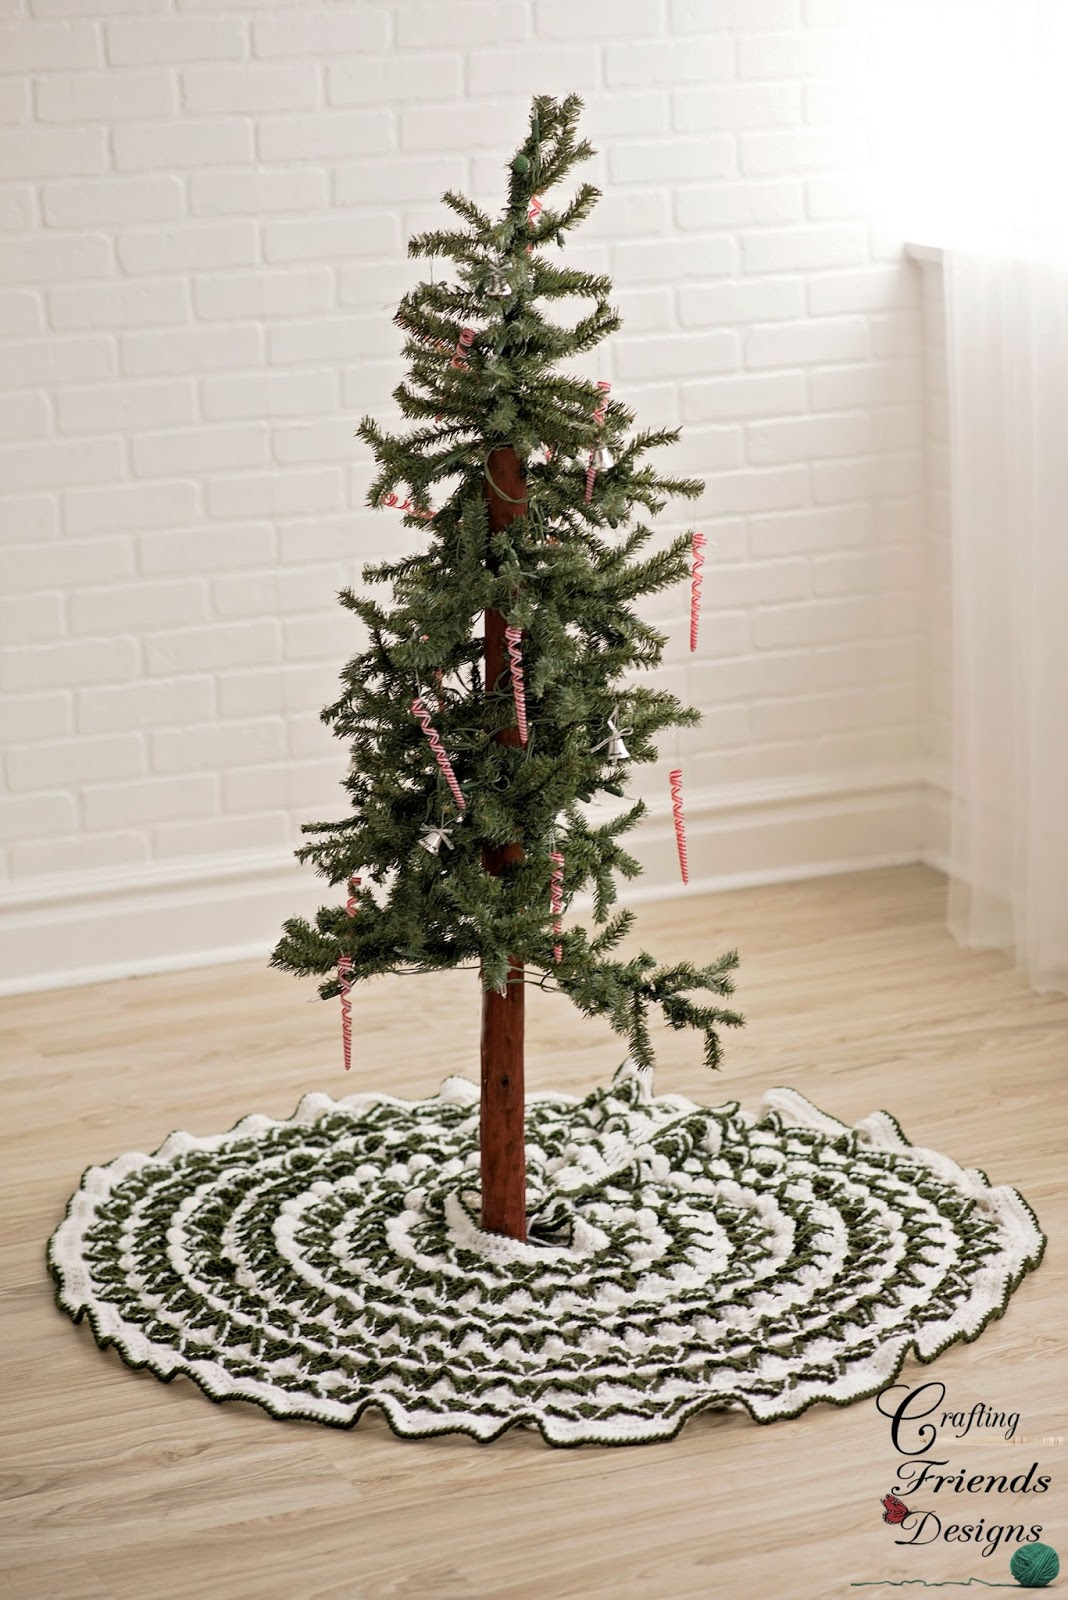 Crafting Friends Designs: Christmas Pine Tree Skirt Free ...